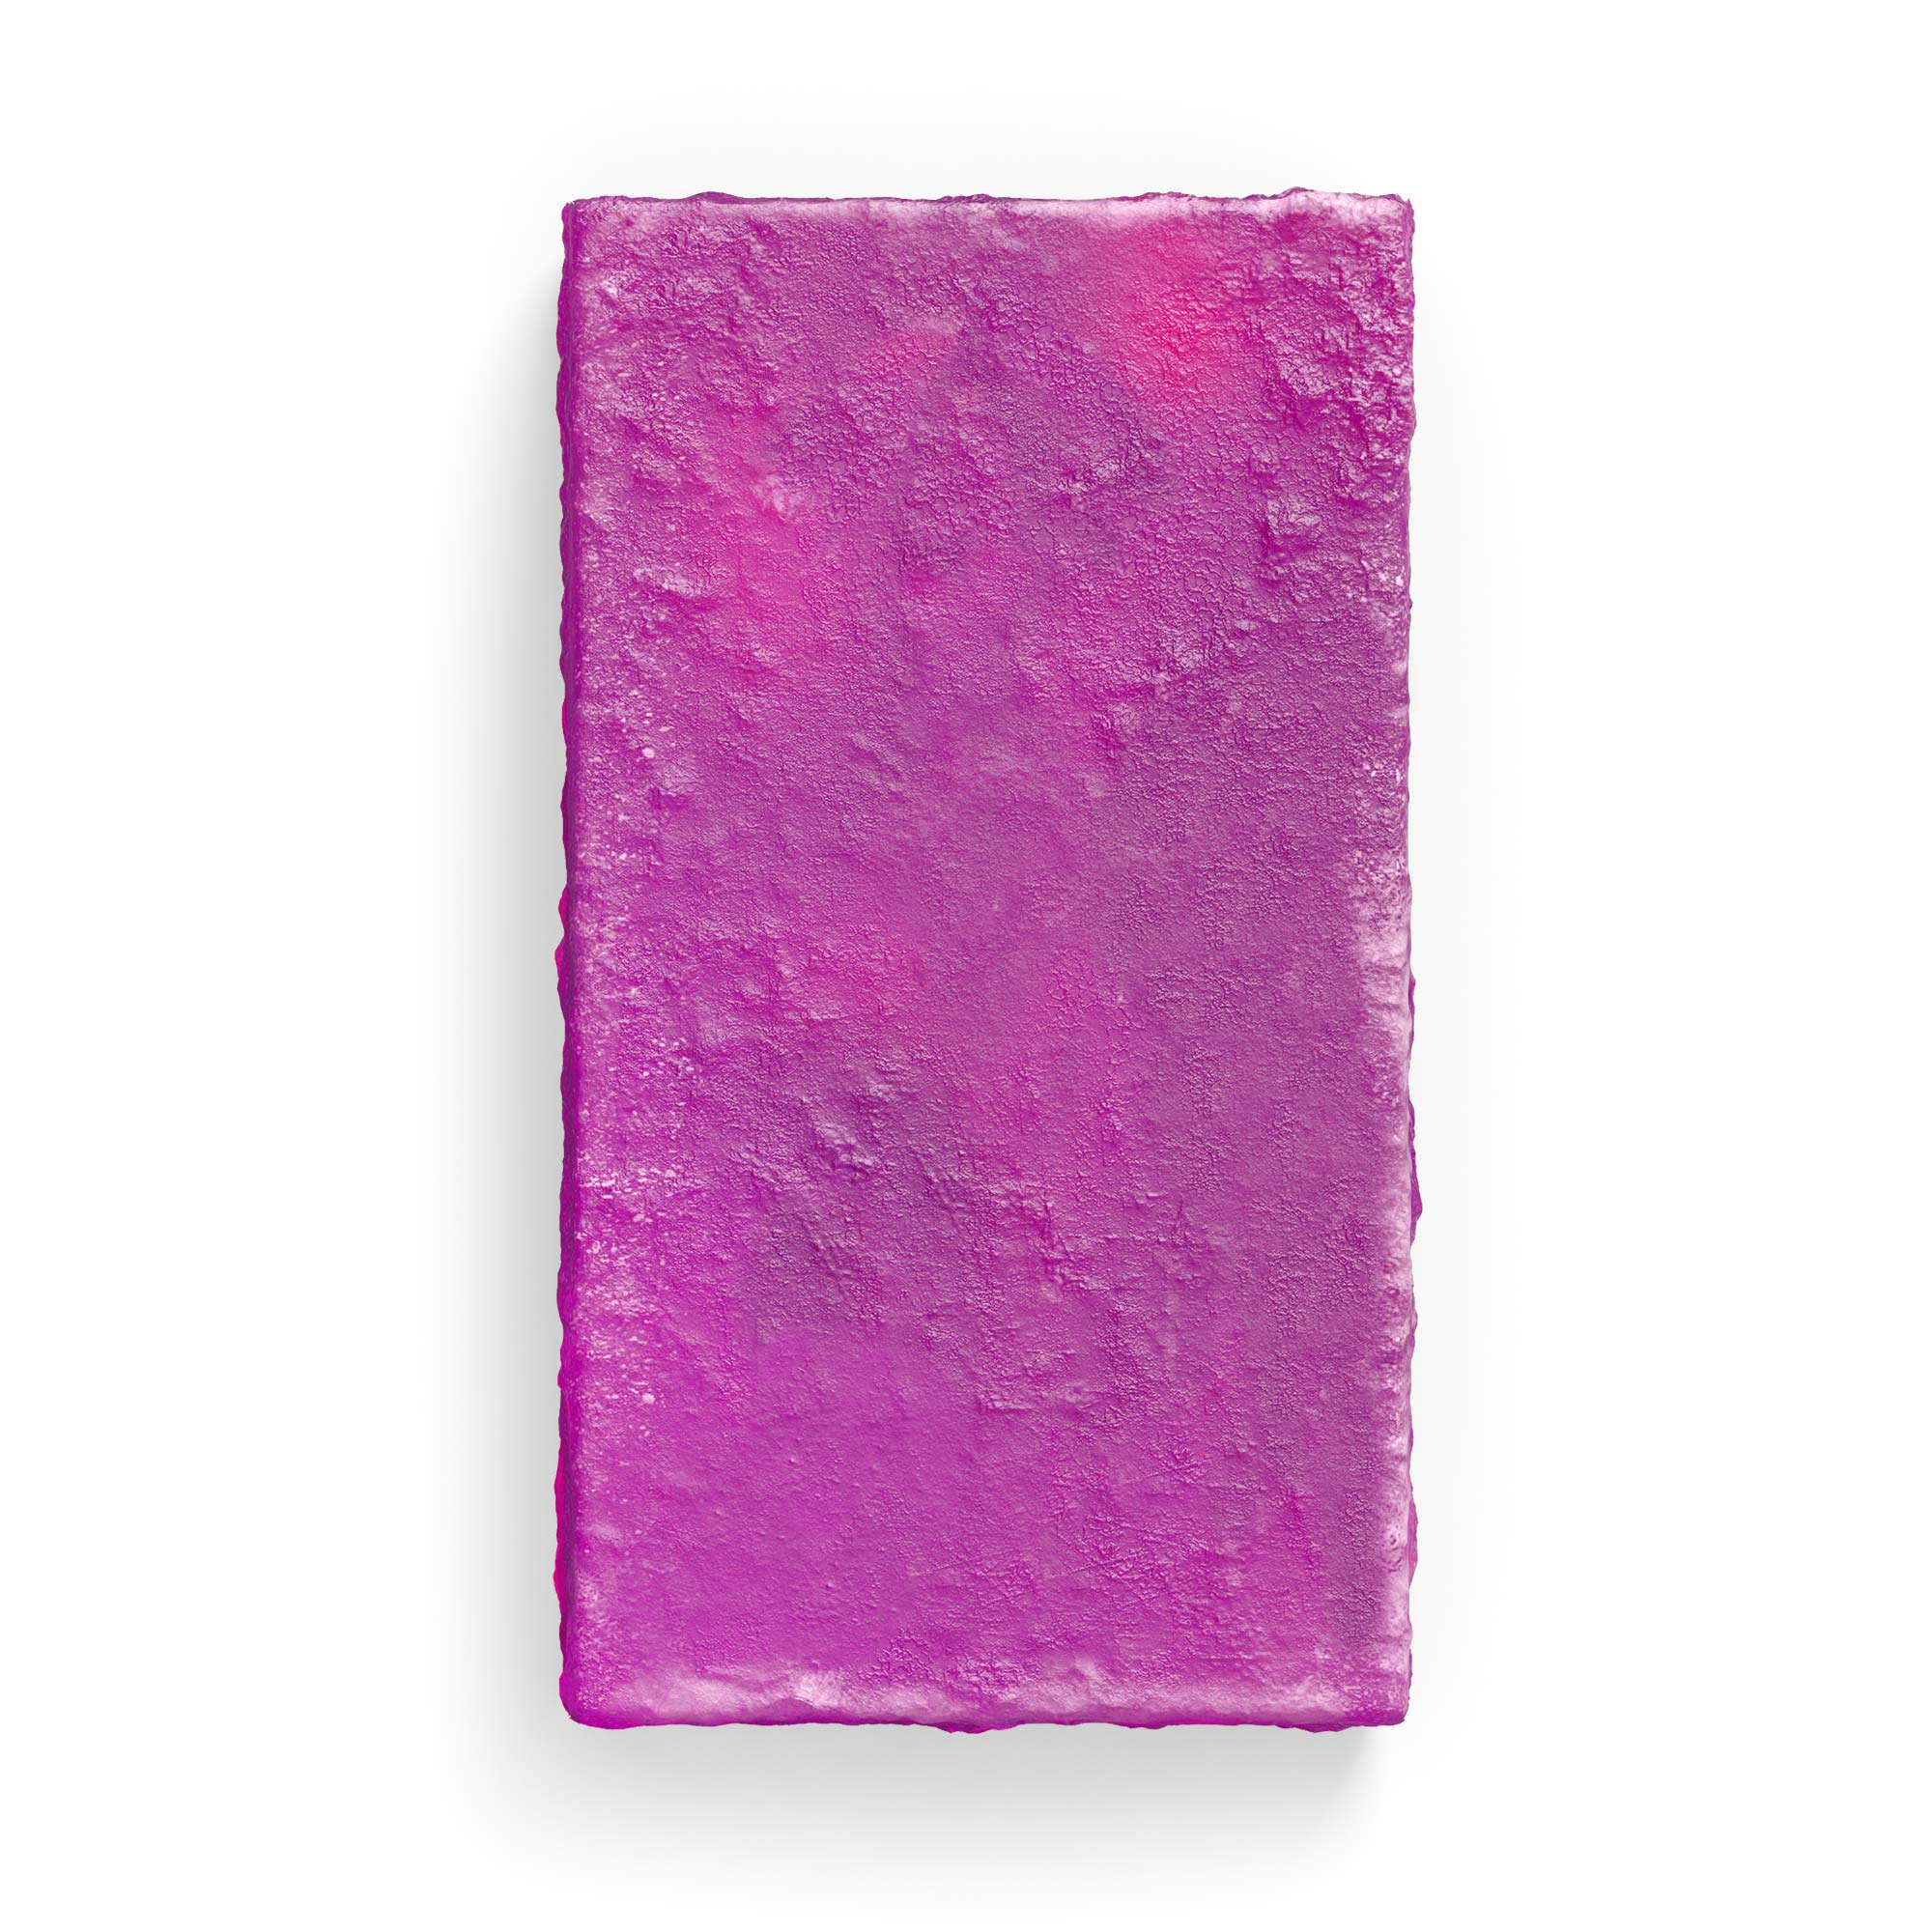 Cherry Blossom Solid Soap Bar